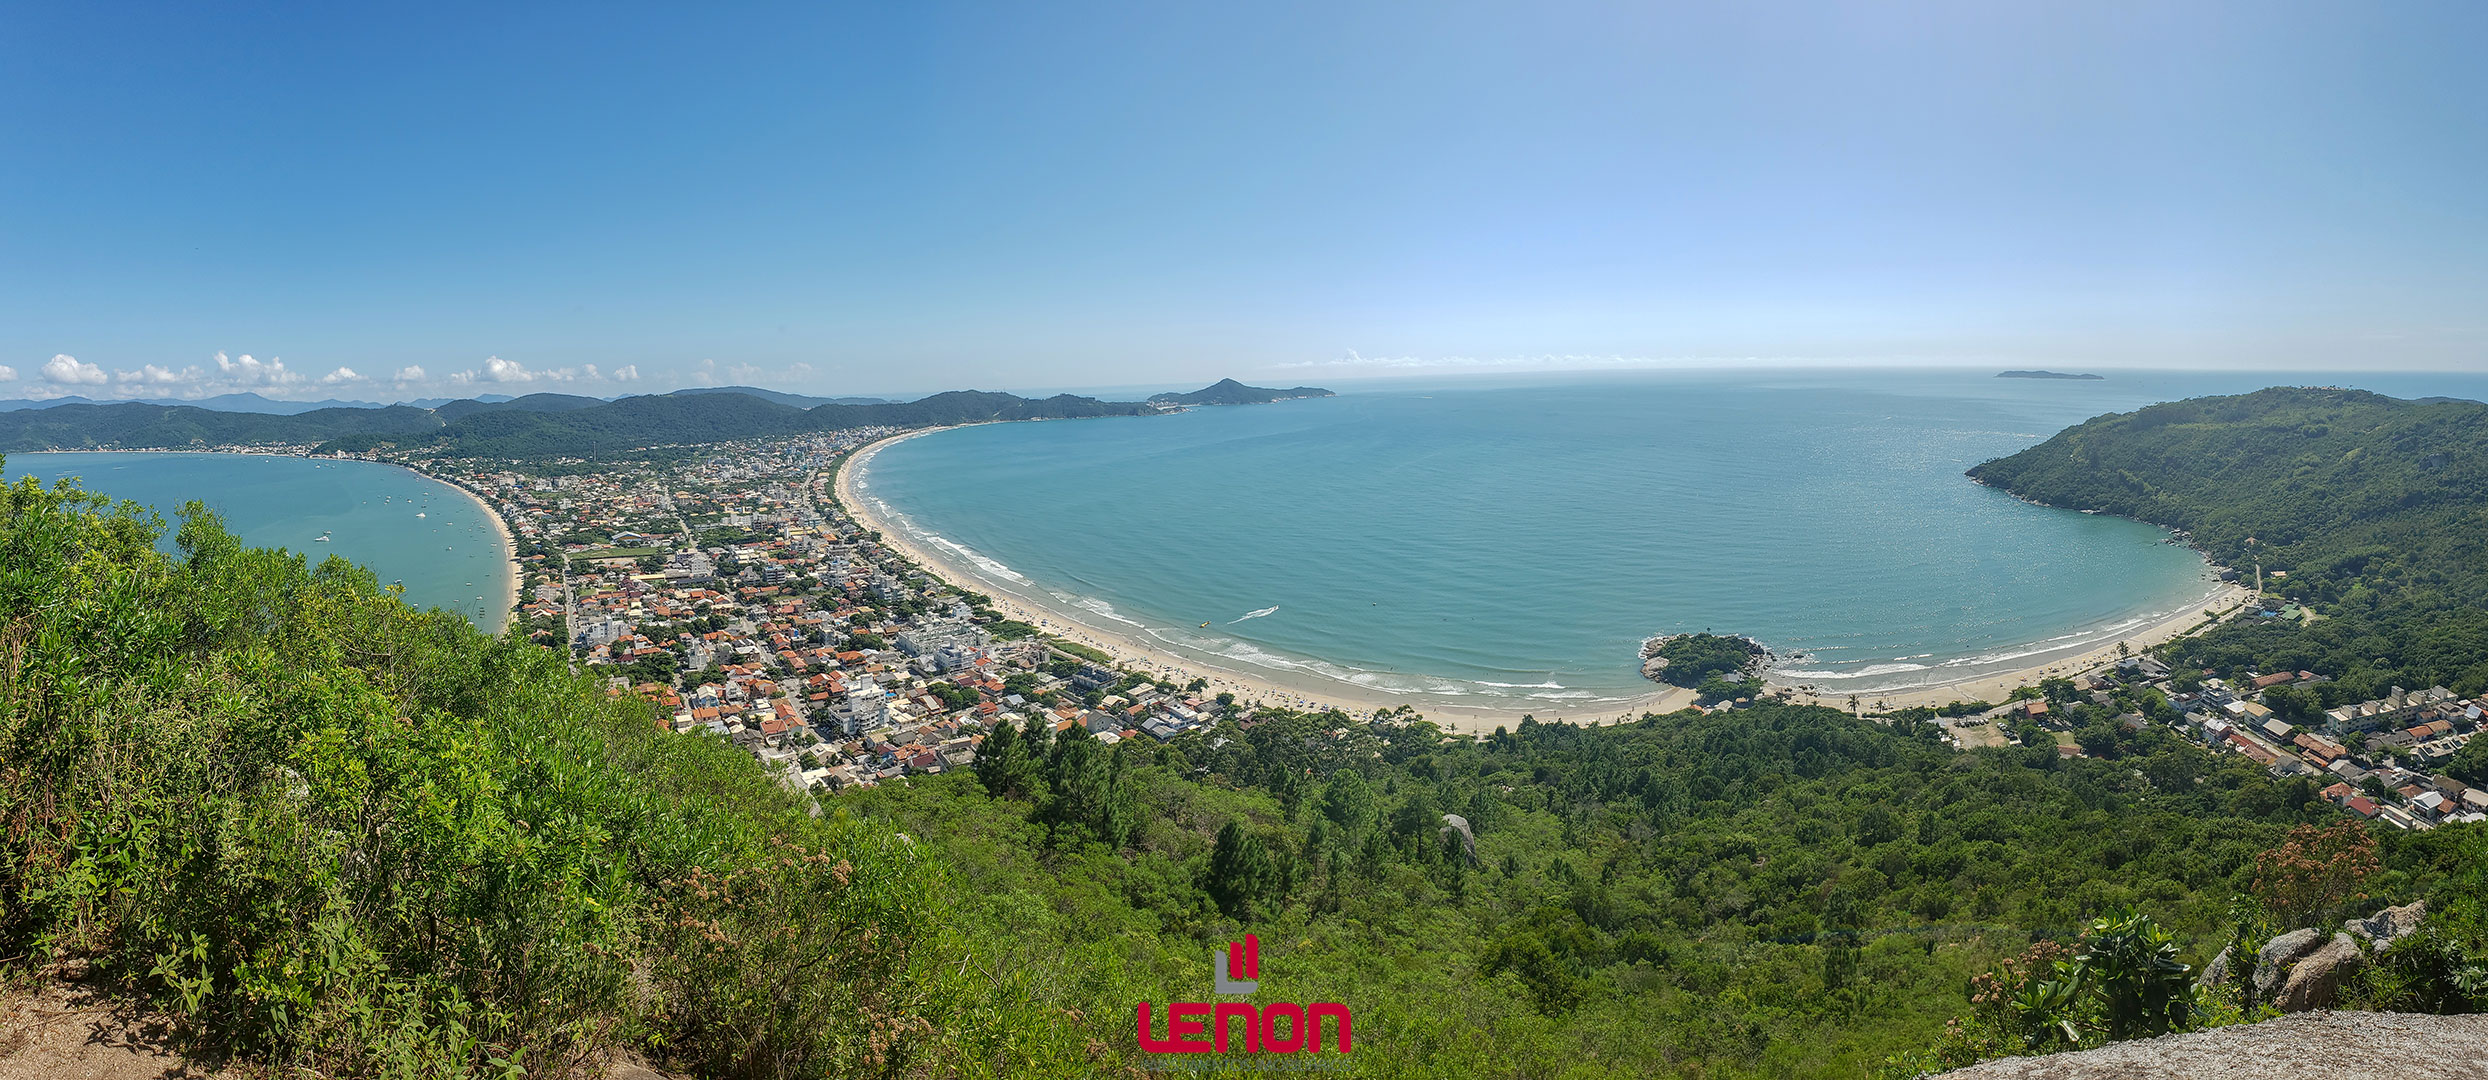 vista do morro do macaco